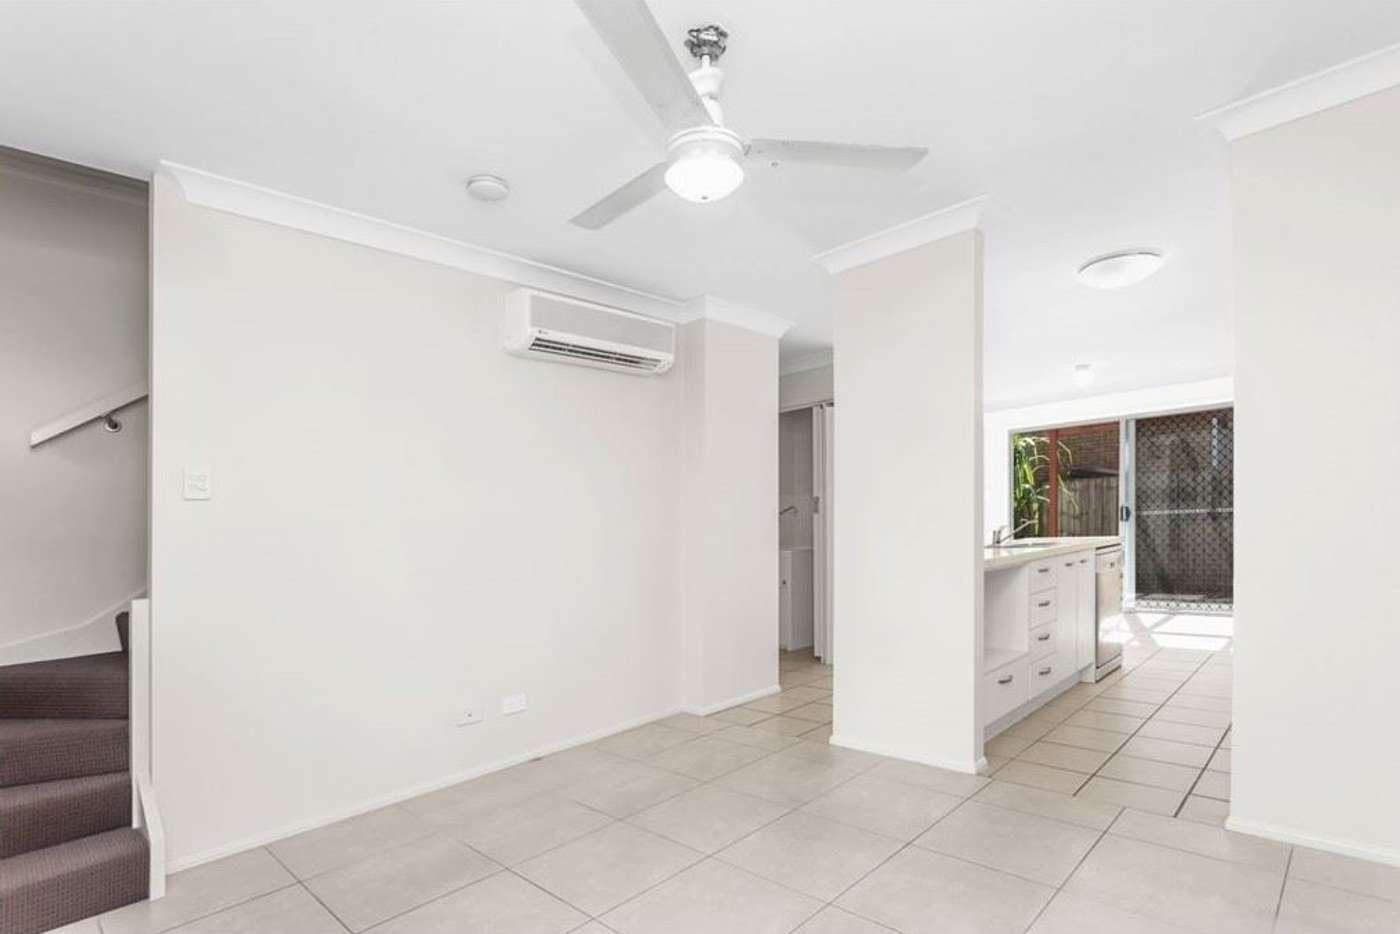 Sixth view of Homely townhouse listing, 6/22 Grasspan Street, Zillmere QLD 4034